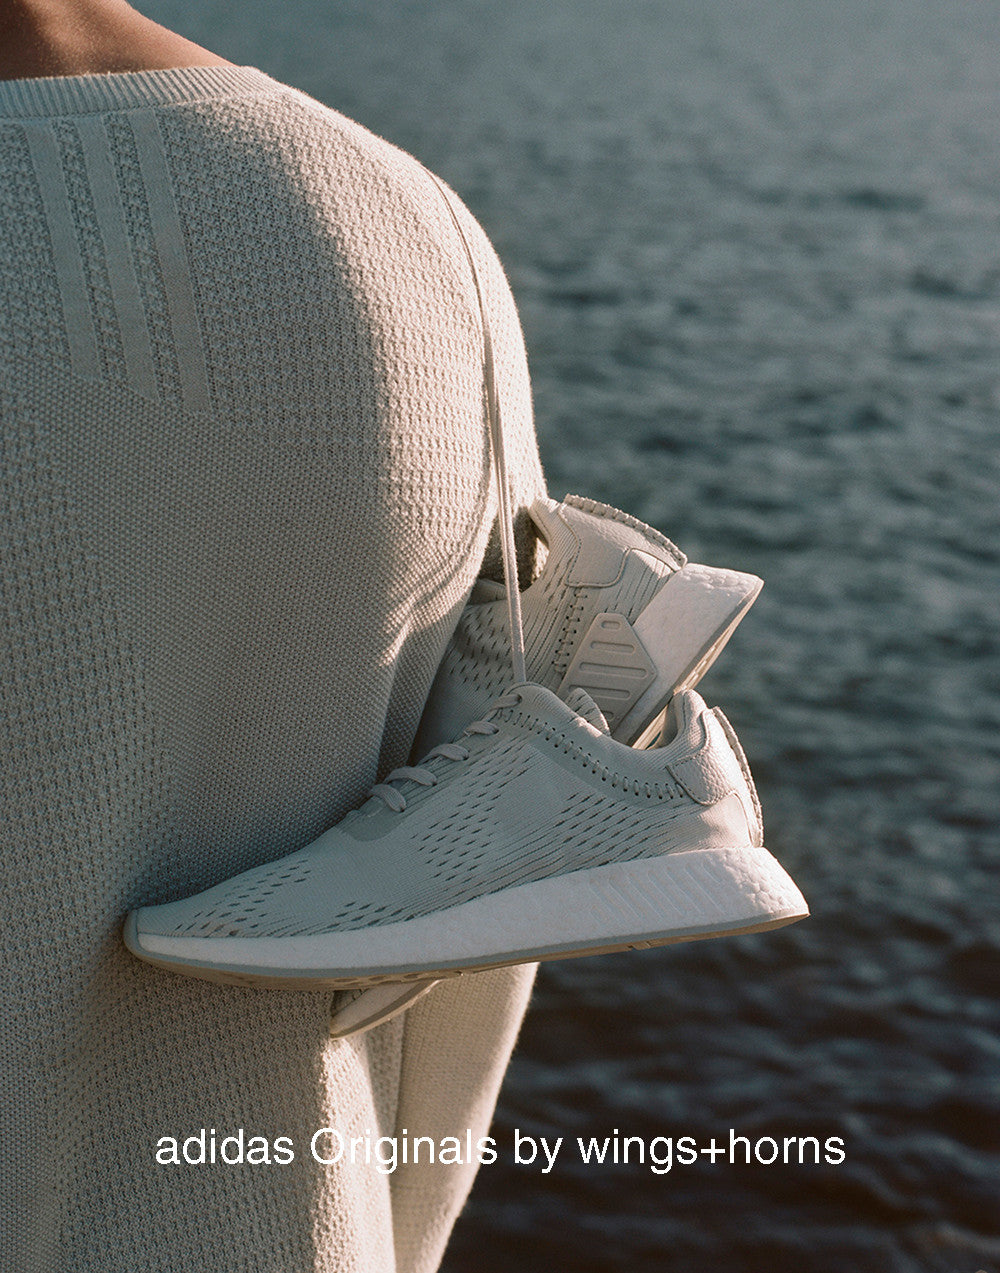 adidas Originals by wings+horns